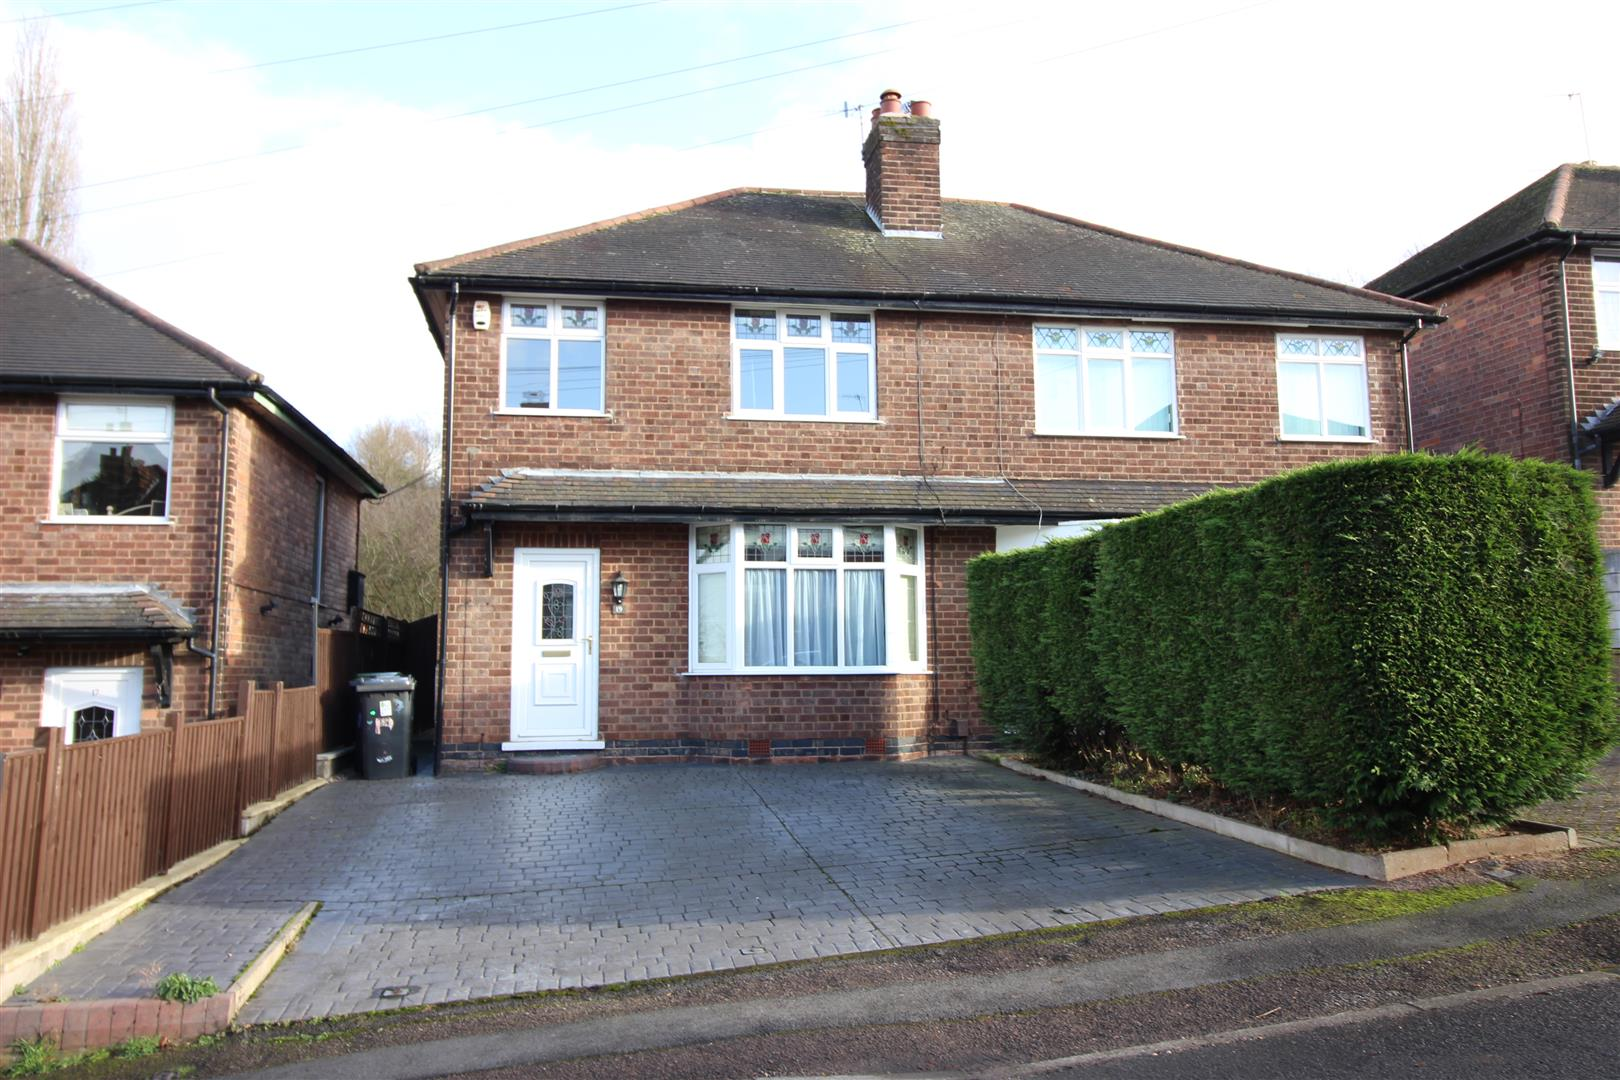 3 Bedrooms Semi Detached House for sale in Cemetery Road, Stapleford, Nottingham